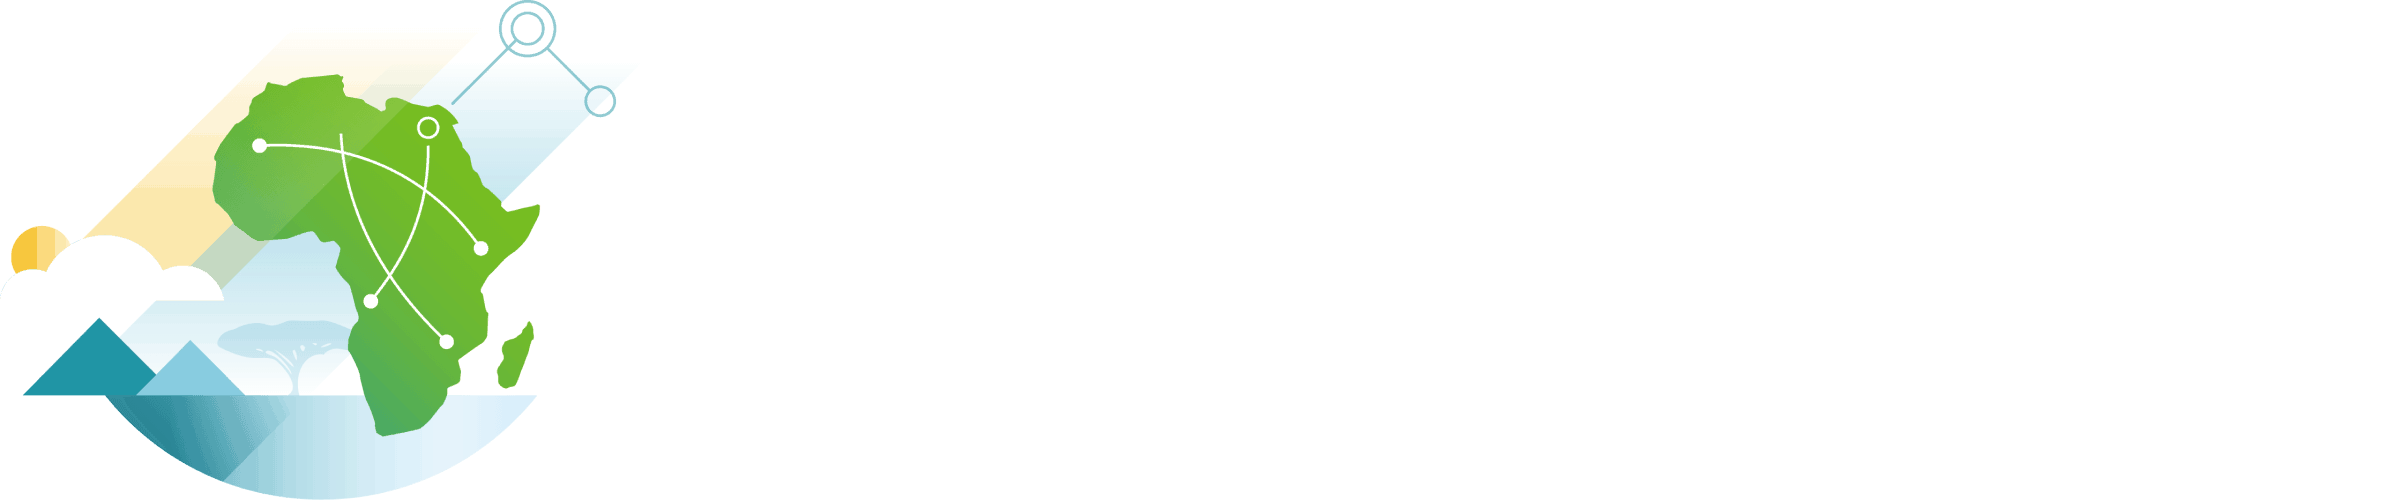 Virtualize Africa